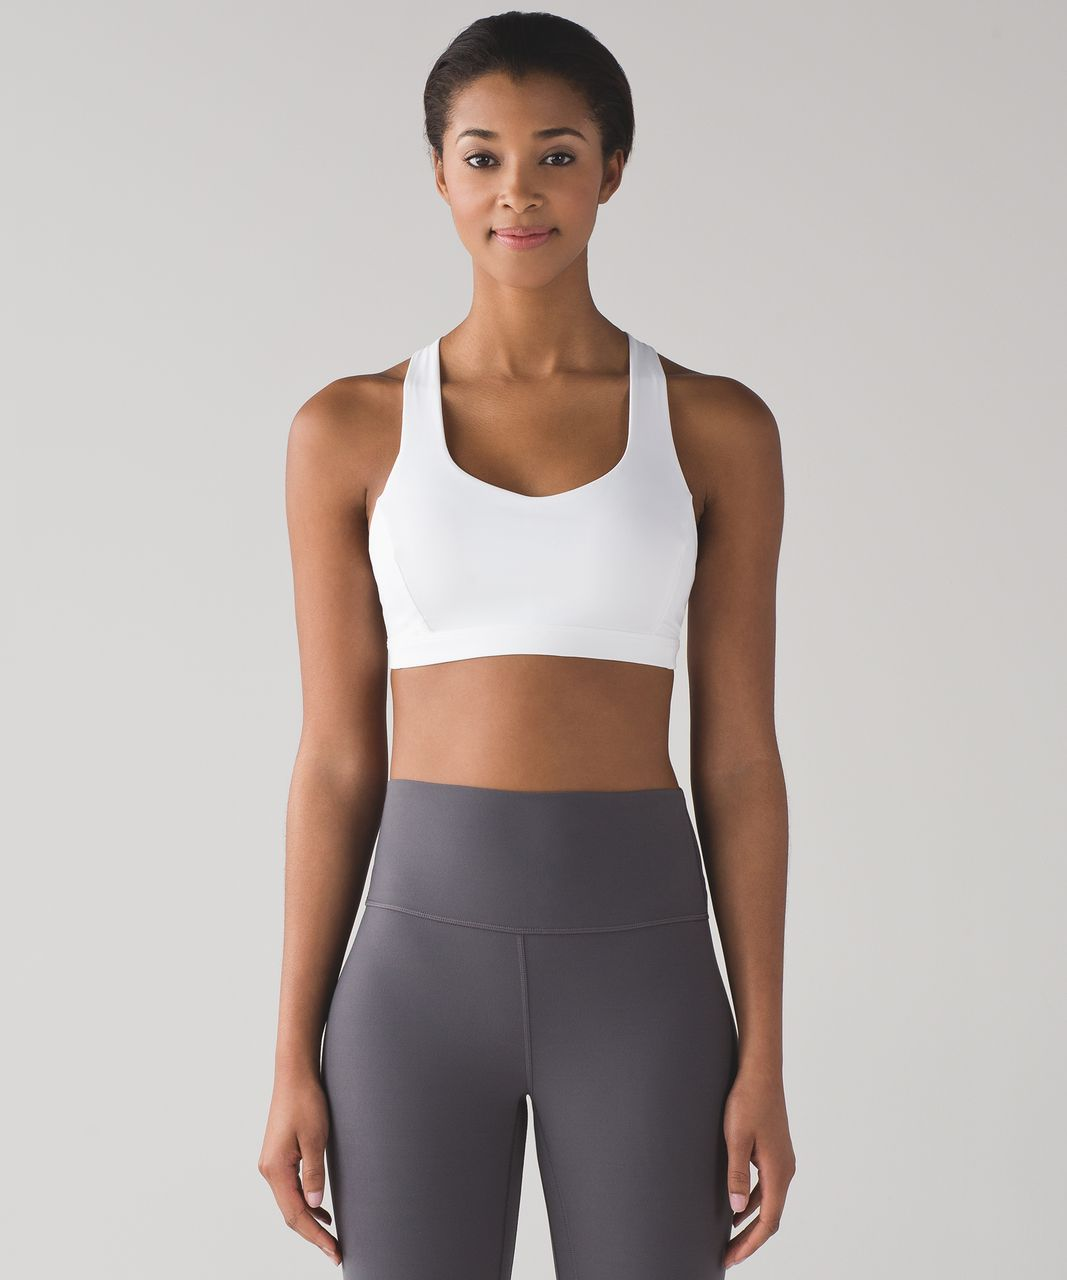 089da315d Lululemon Free To Be Serene Bra - White - lulu fanatics